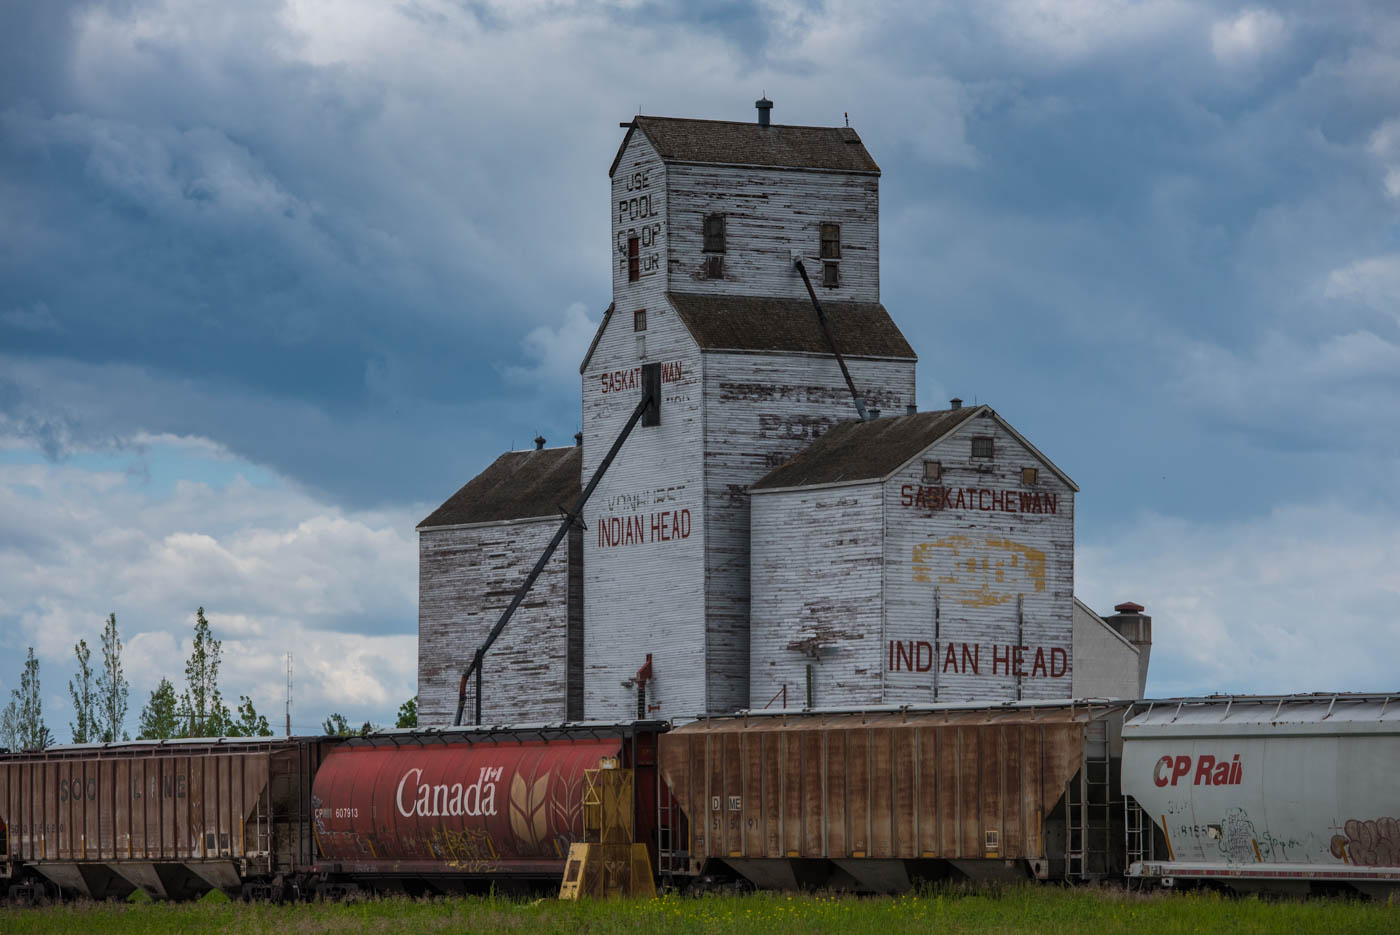 Typical grain elevator along the road